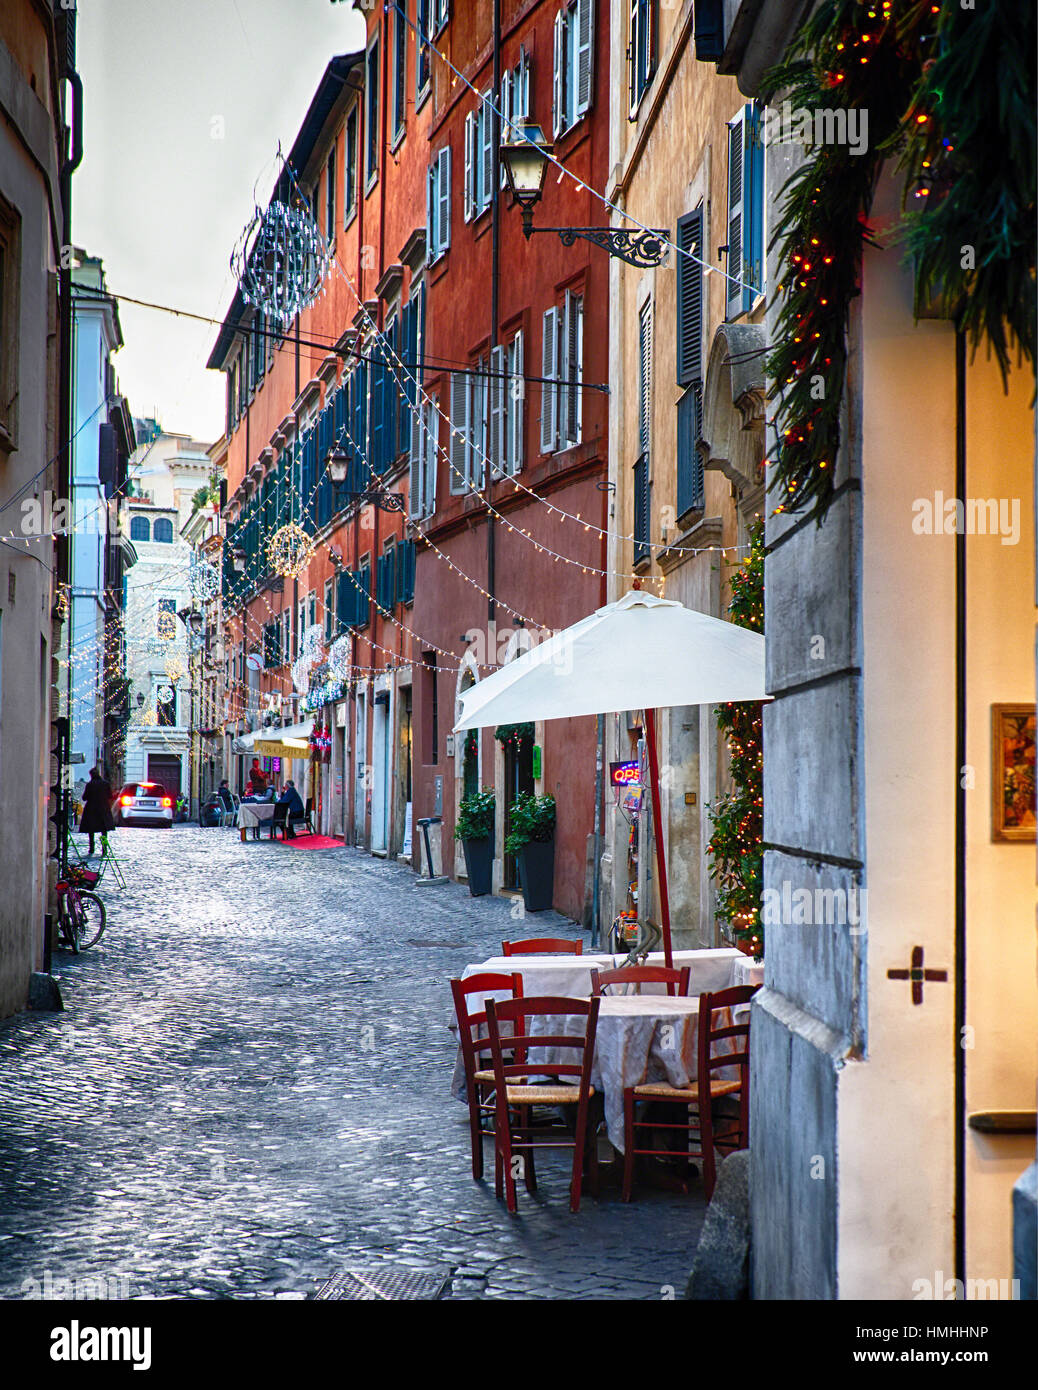 Alley in Rome During the Christmas Holidays, Via Del Orso, Rome, Lazio, Italy - Stock Image